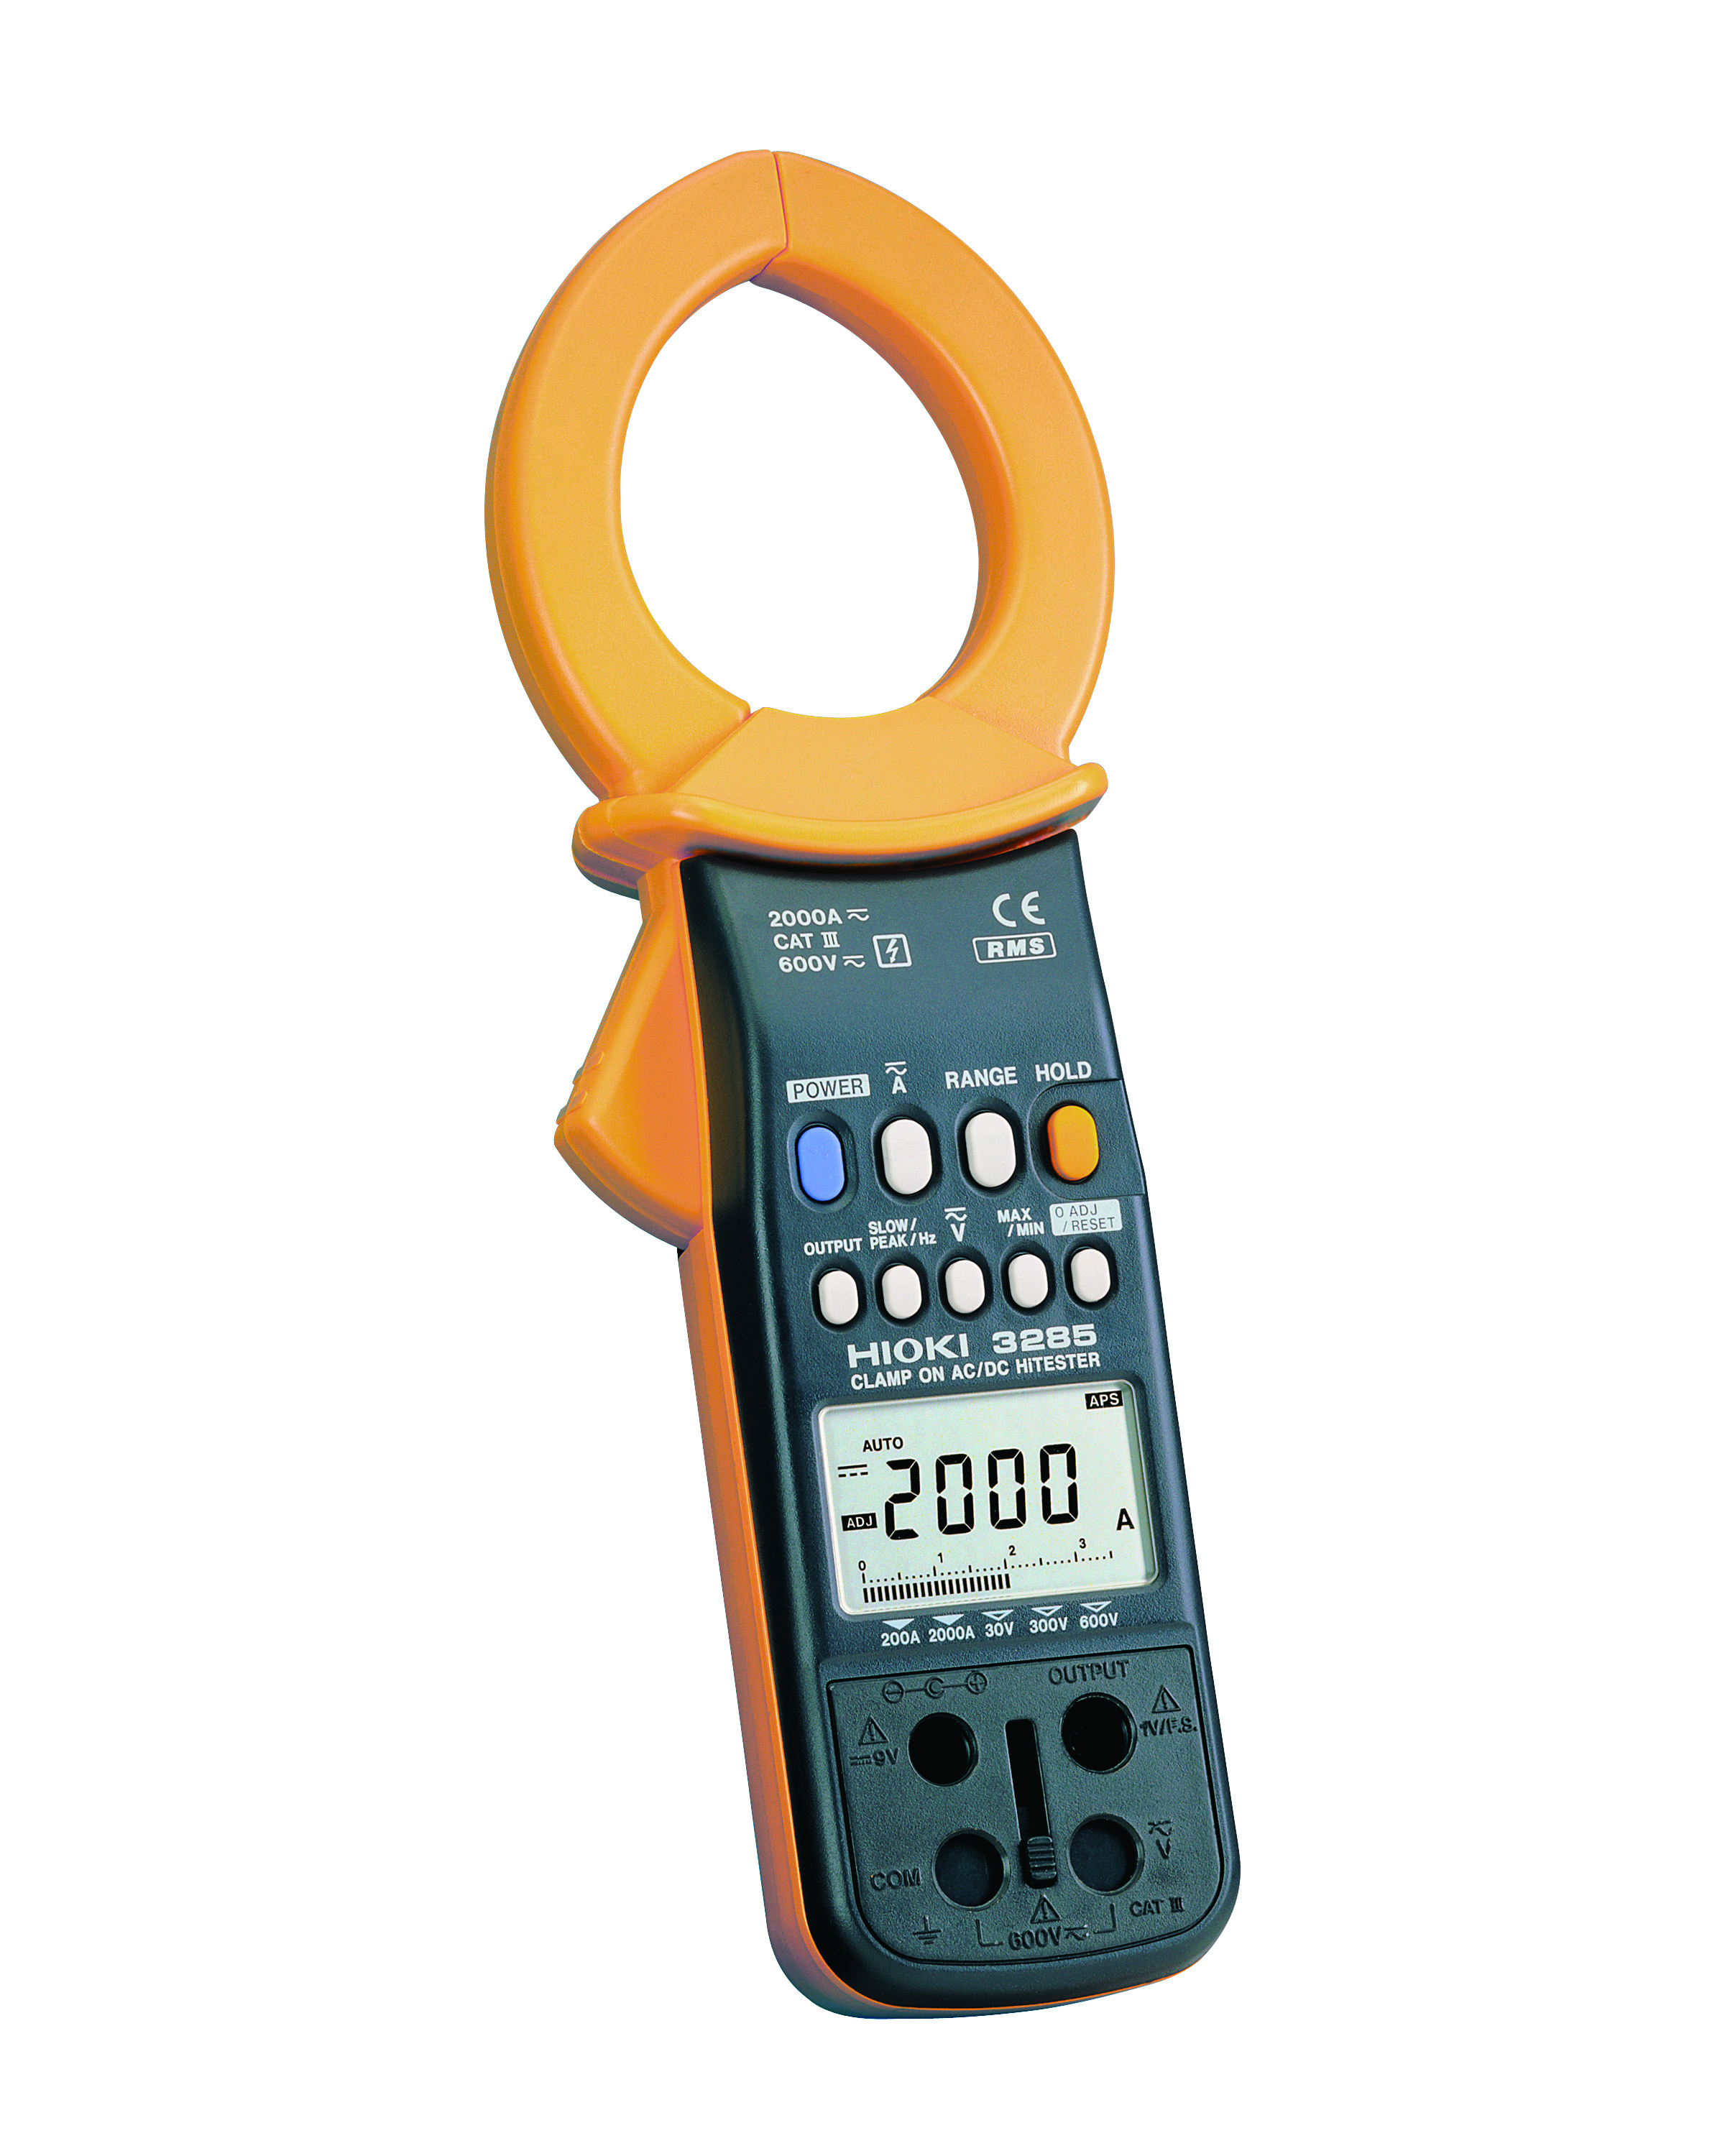 3285 Clamp Tester, 2000A AC/DC, TRMS, CAT III 600V